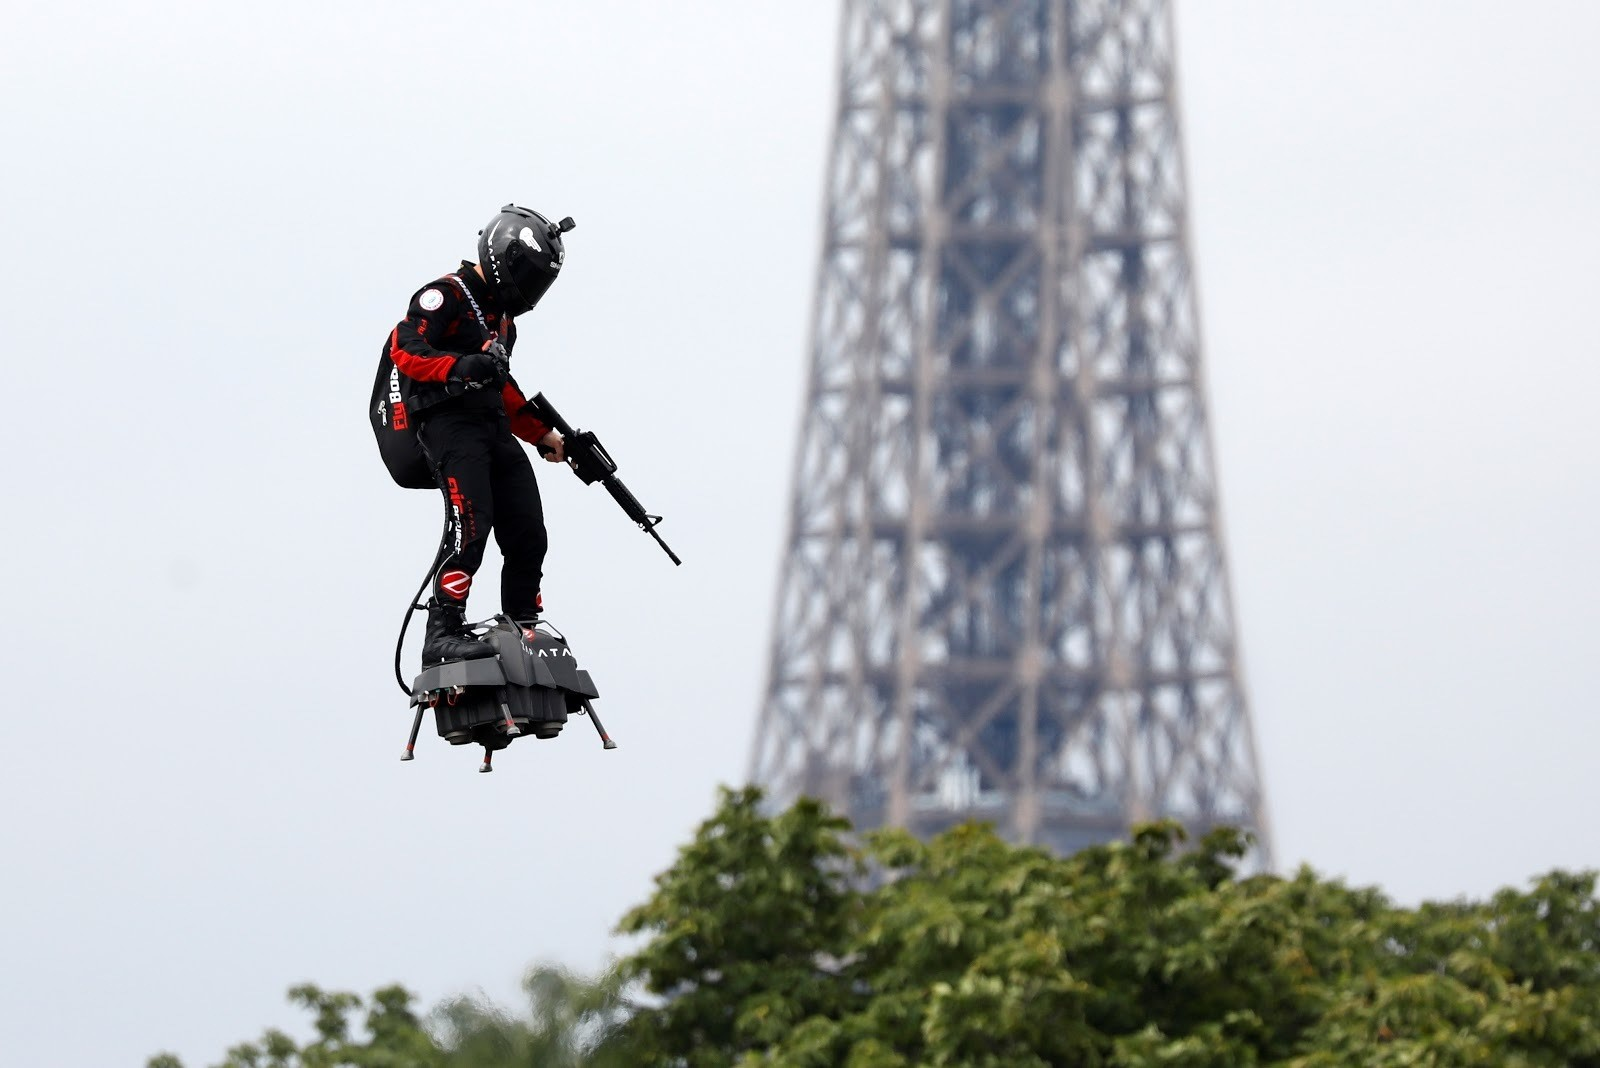 Franky Zapata flies on a Flyboard near the Eiffel Tower during the traditional Bastille Day military parade on the Champs-Elysees Avenue in Paris, France, July 14, 2019. REUTERS/Charles Platiau - RC1FB782DD00